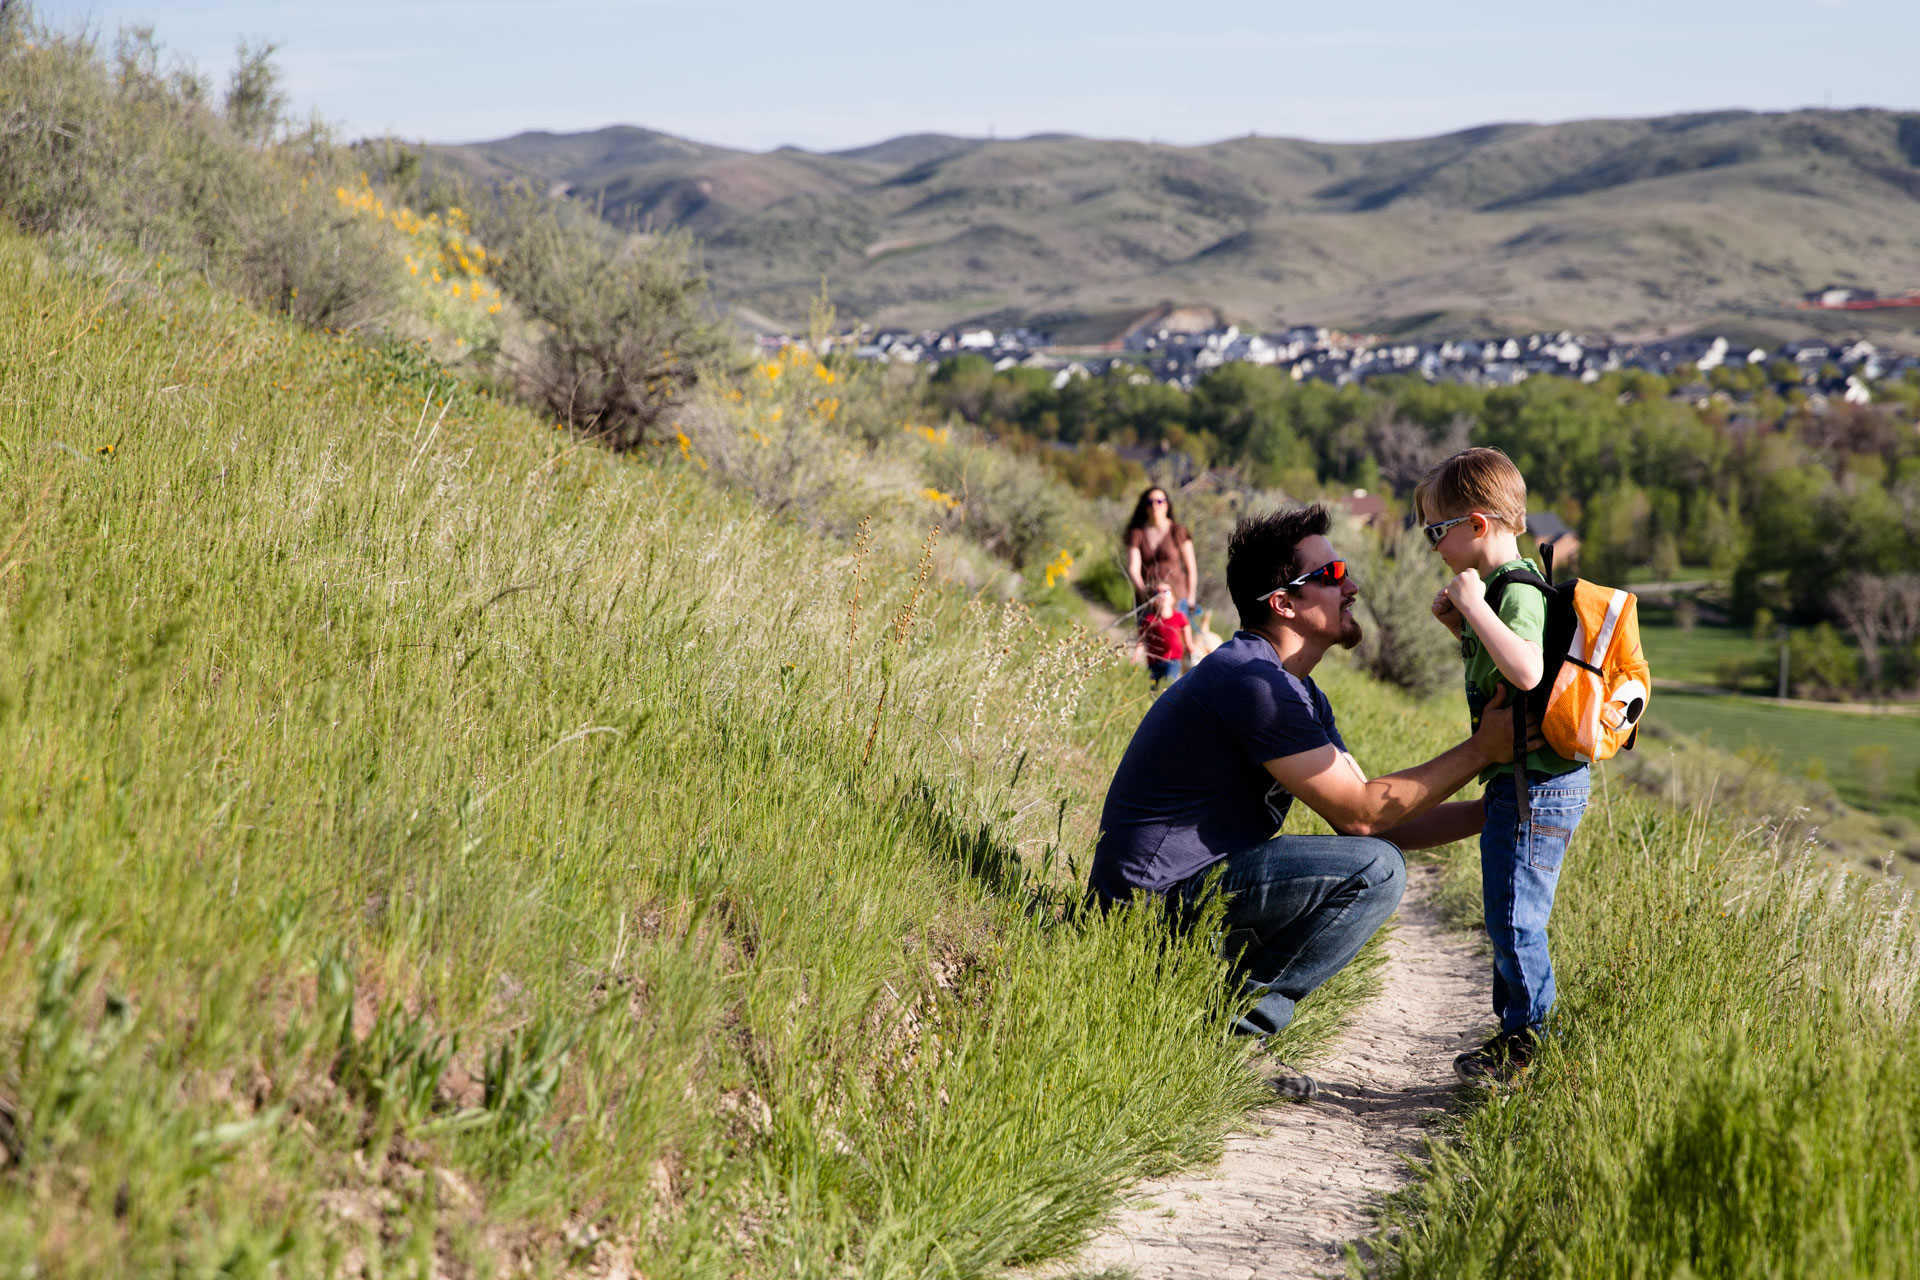 dad kneeling down to talk with youngest son on hike with family on a sunny day